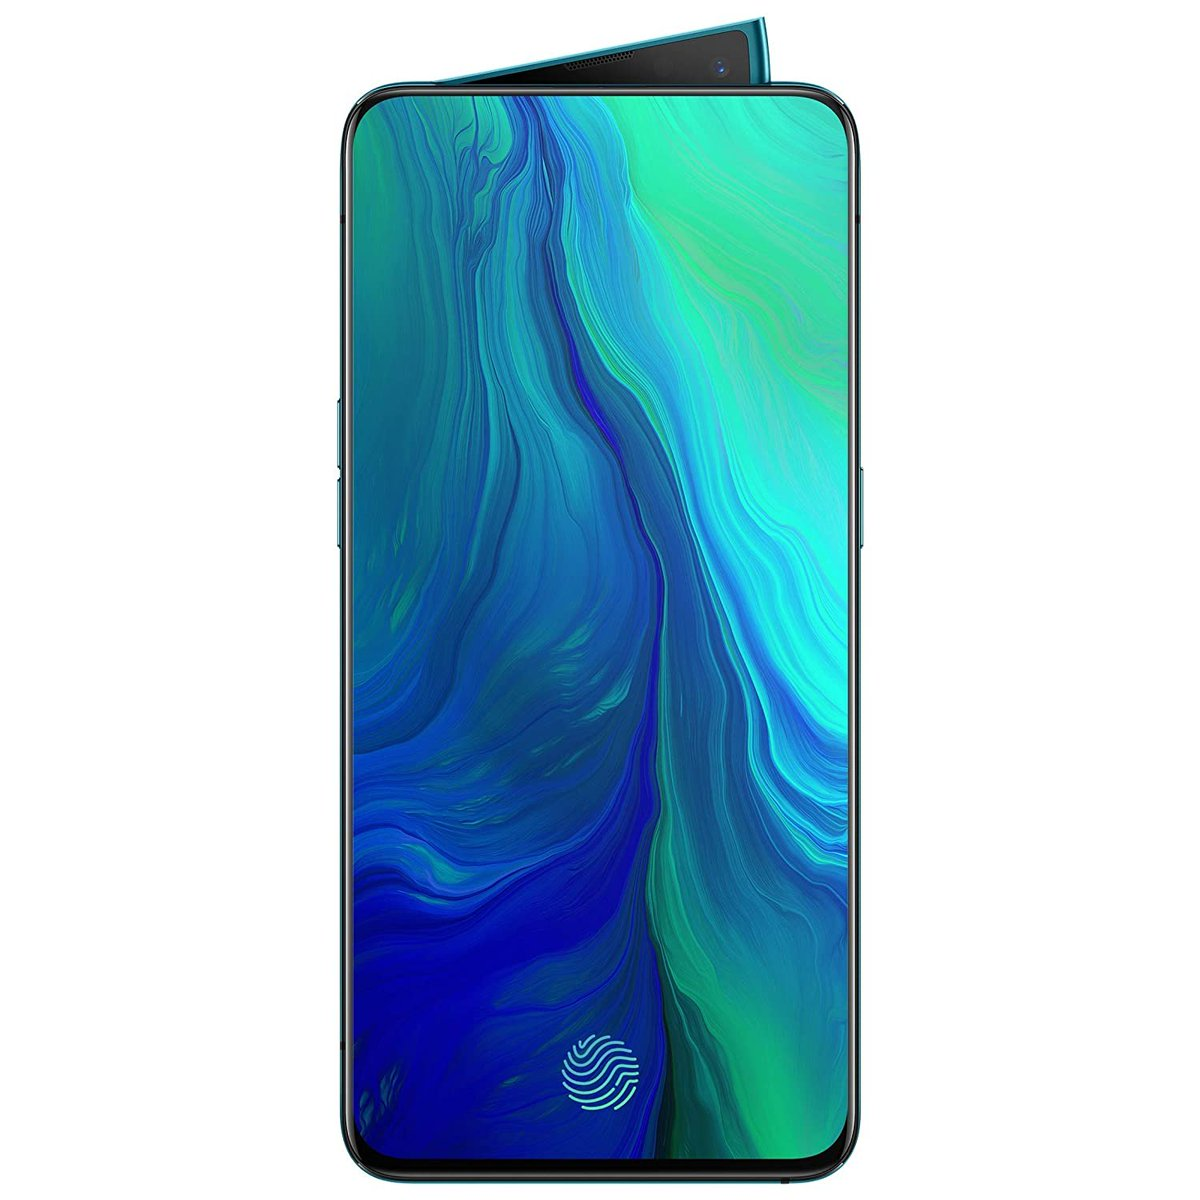 SAVE UPTO ₹ 14,000.00 (25%) OPPO Reno 10x Zoom BUY NOW - https://amzn.to/2Z7sqOq    #smartphonephotography #smartphones  #smartphonephoto #smartphone_photography #secondhandsmartphone #preownedsmartphone #smartphonecases #shotonsmartphone #smartphonecase #opposmartphonepic.twitter.com/1aMuG9Xslo